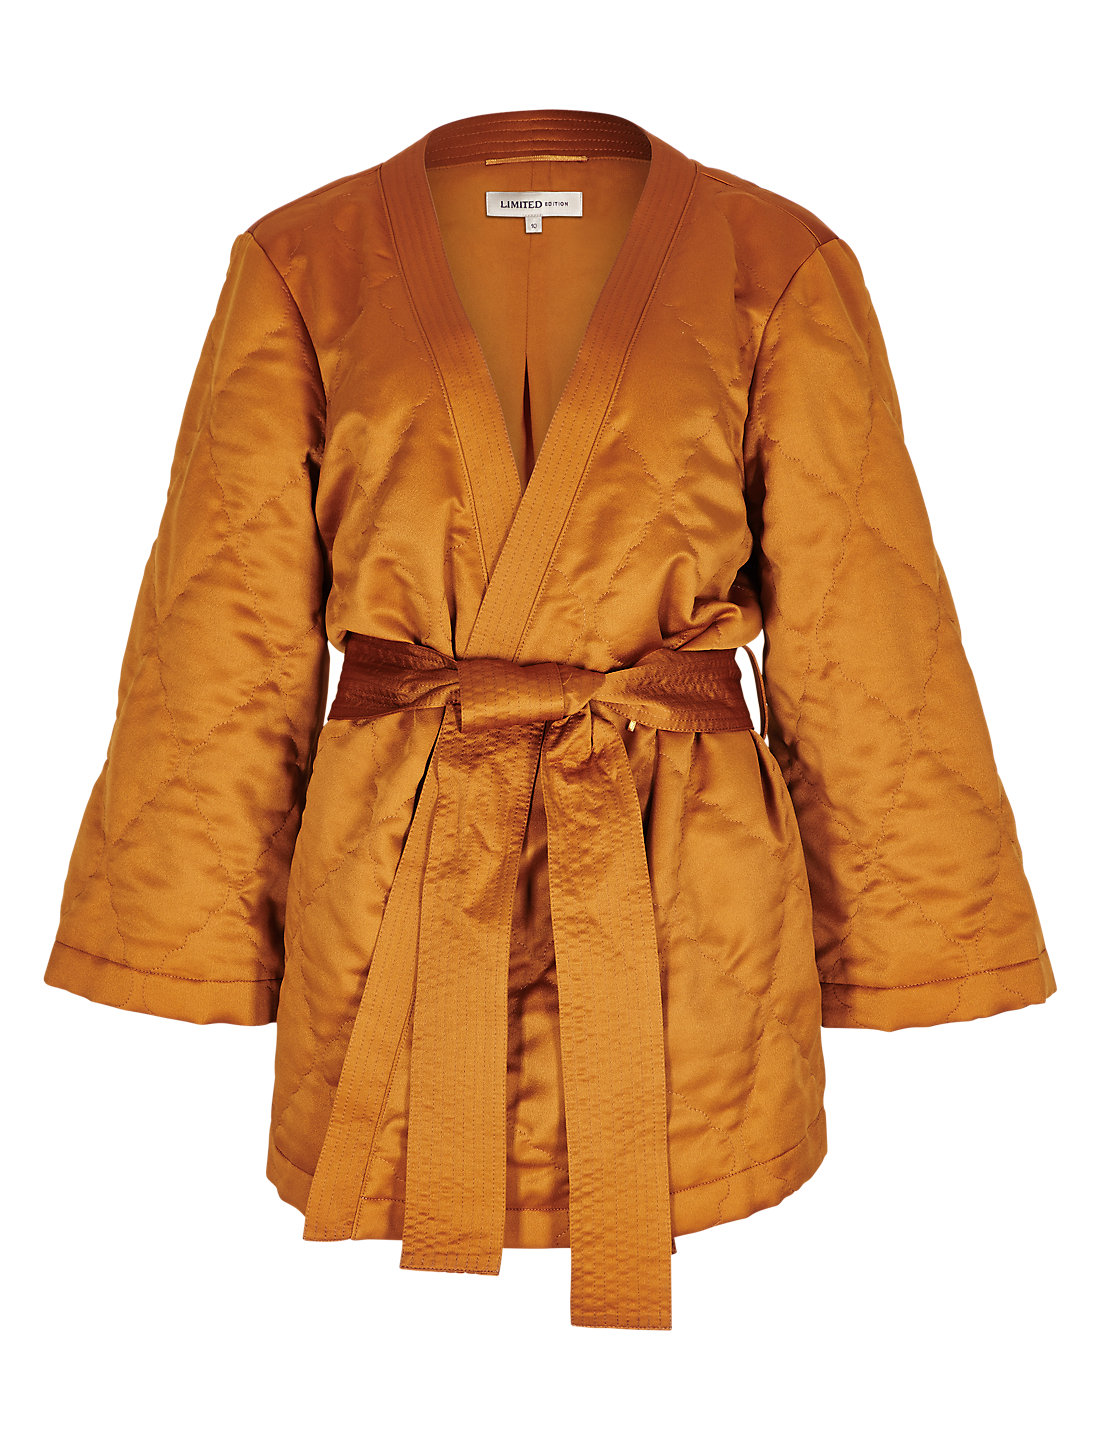 3/4 Sleeve Quilted Kimono Belted Jacket | M&S : quilted kimono jacket - Adamdwight.com